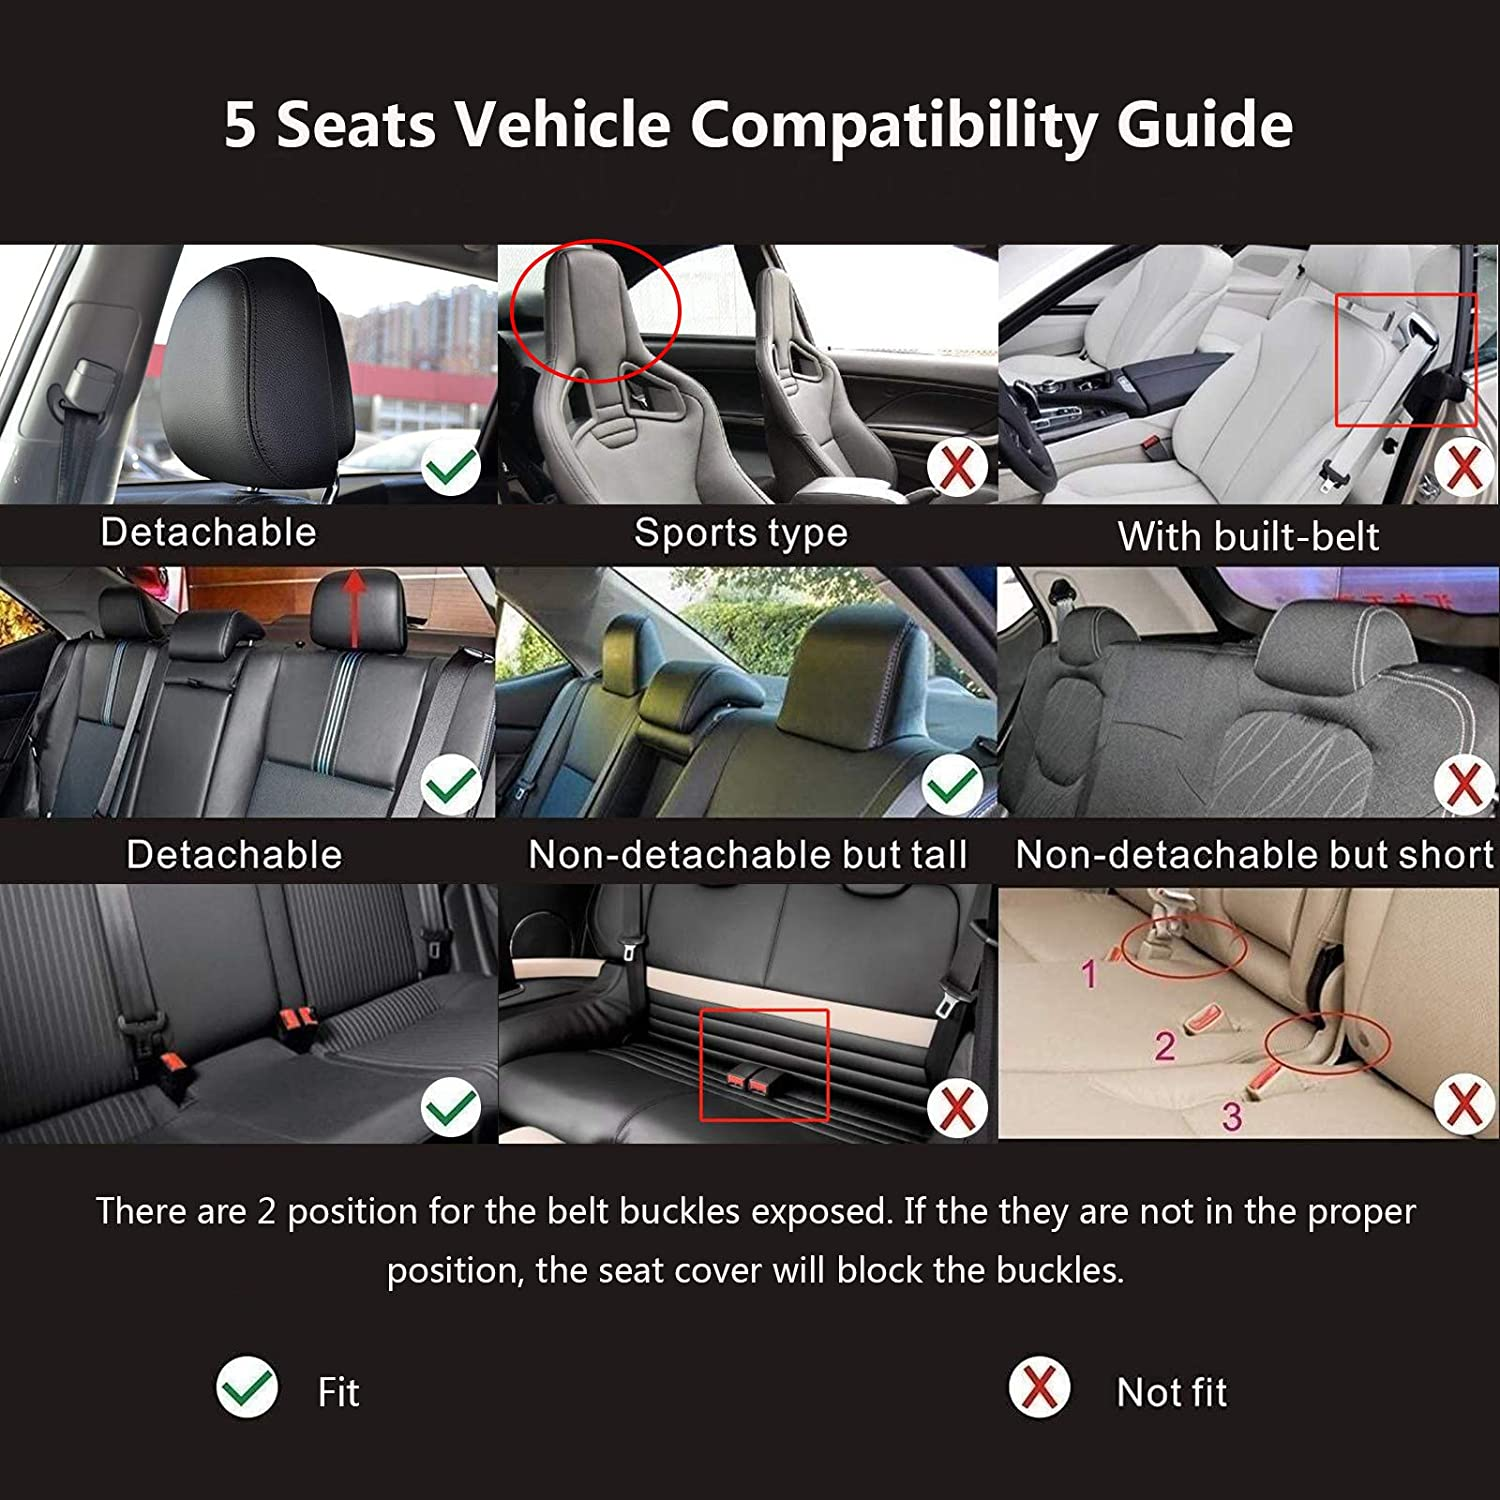 5 Seat Vehicle Compatibility guide